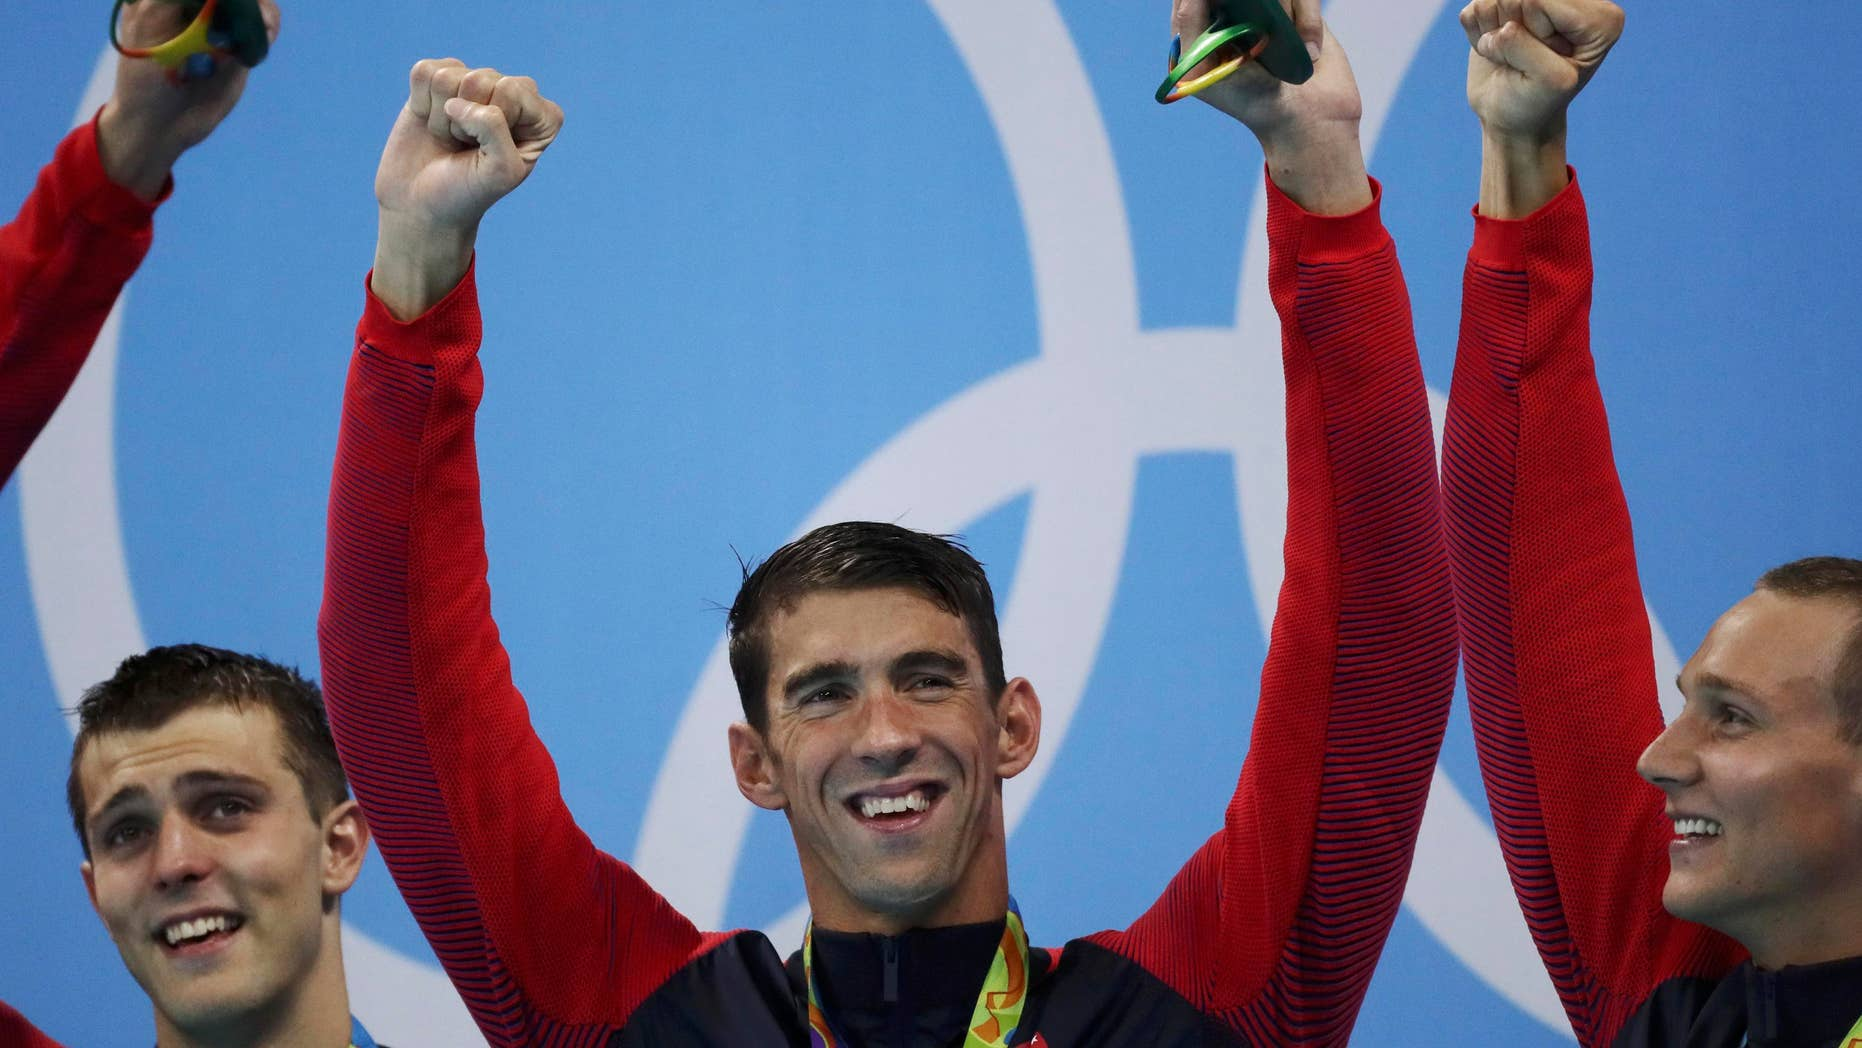 Michael Phelps, Ryan Held and Caeleb Dressel of USA celebrate on the podium during the 2016 Rio Olympics.